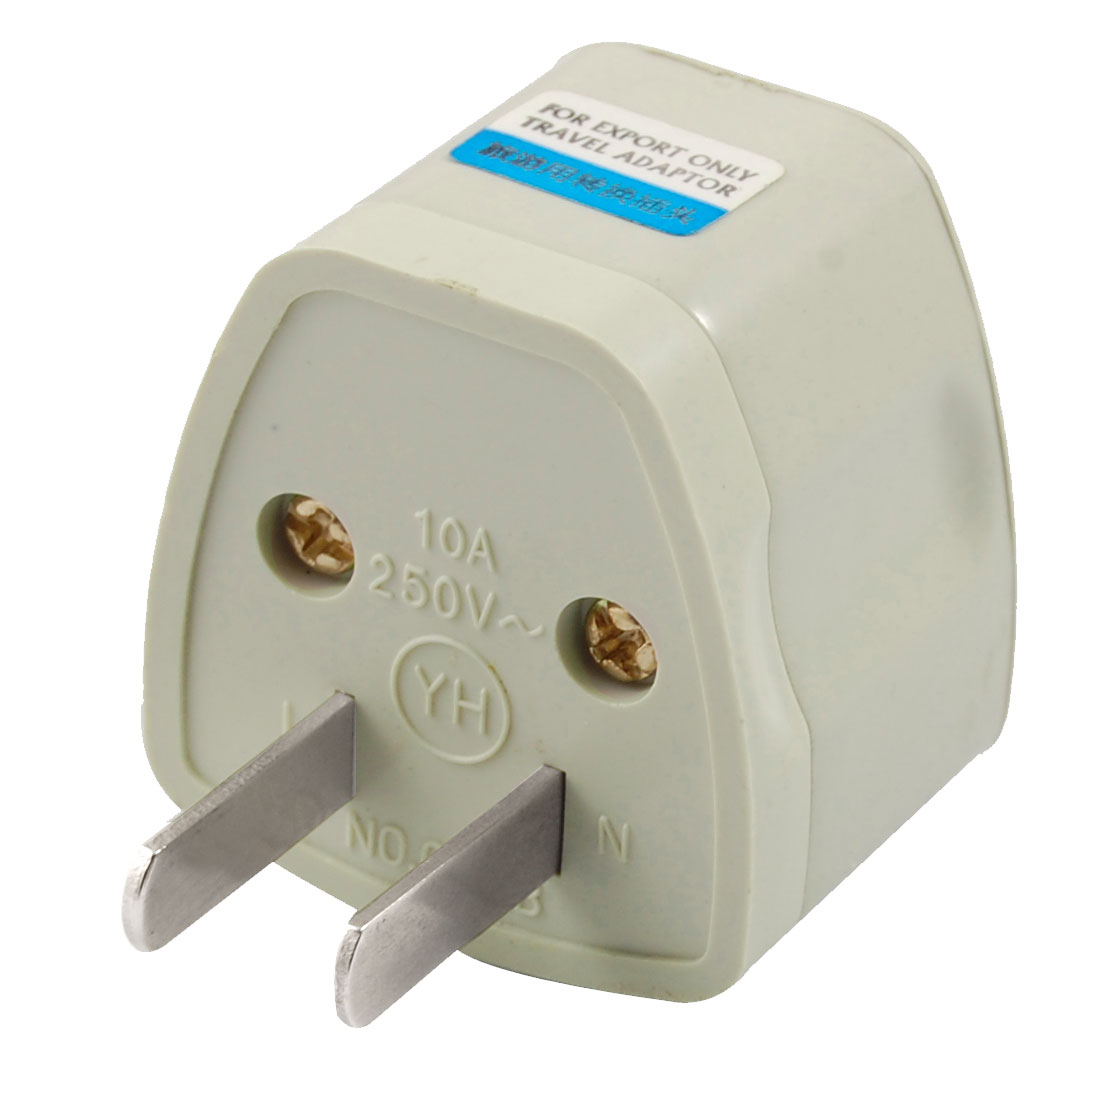 AC 250V 2 Flat Pin Plug to US UK EU AU Socket Power Adapter